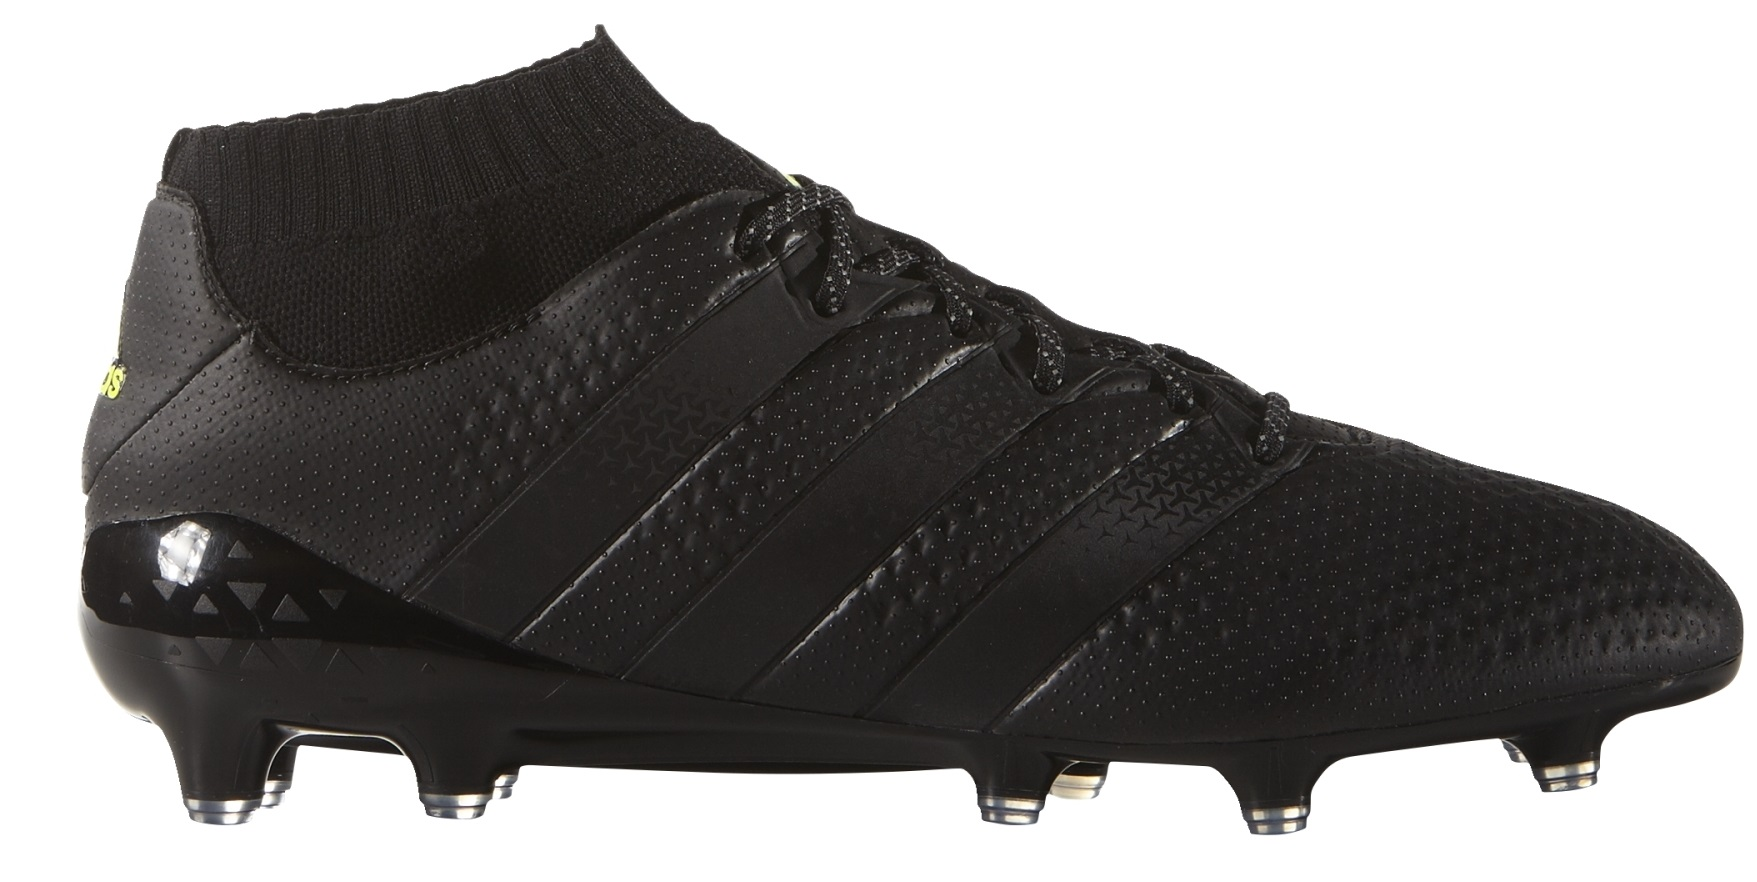 best website 713ae 968a9 Chaussures de Football Adidas Ace 16.1 Primeknit FG colore Noir - Adidas -  SportIT.com